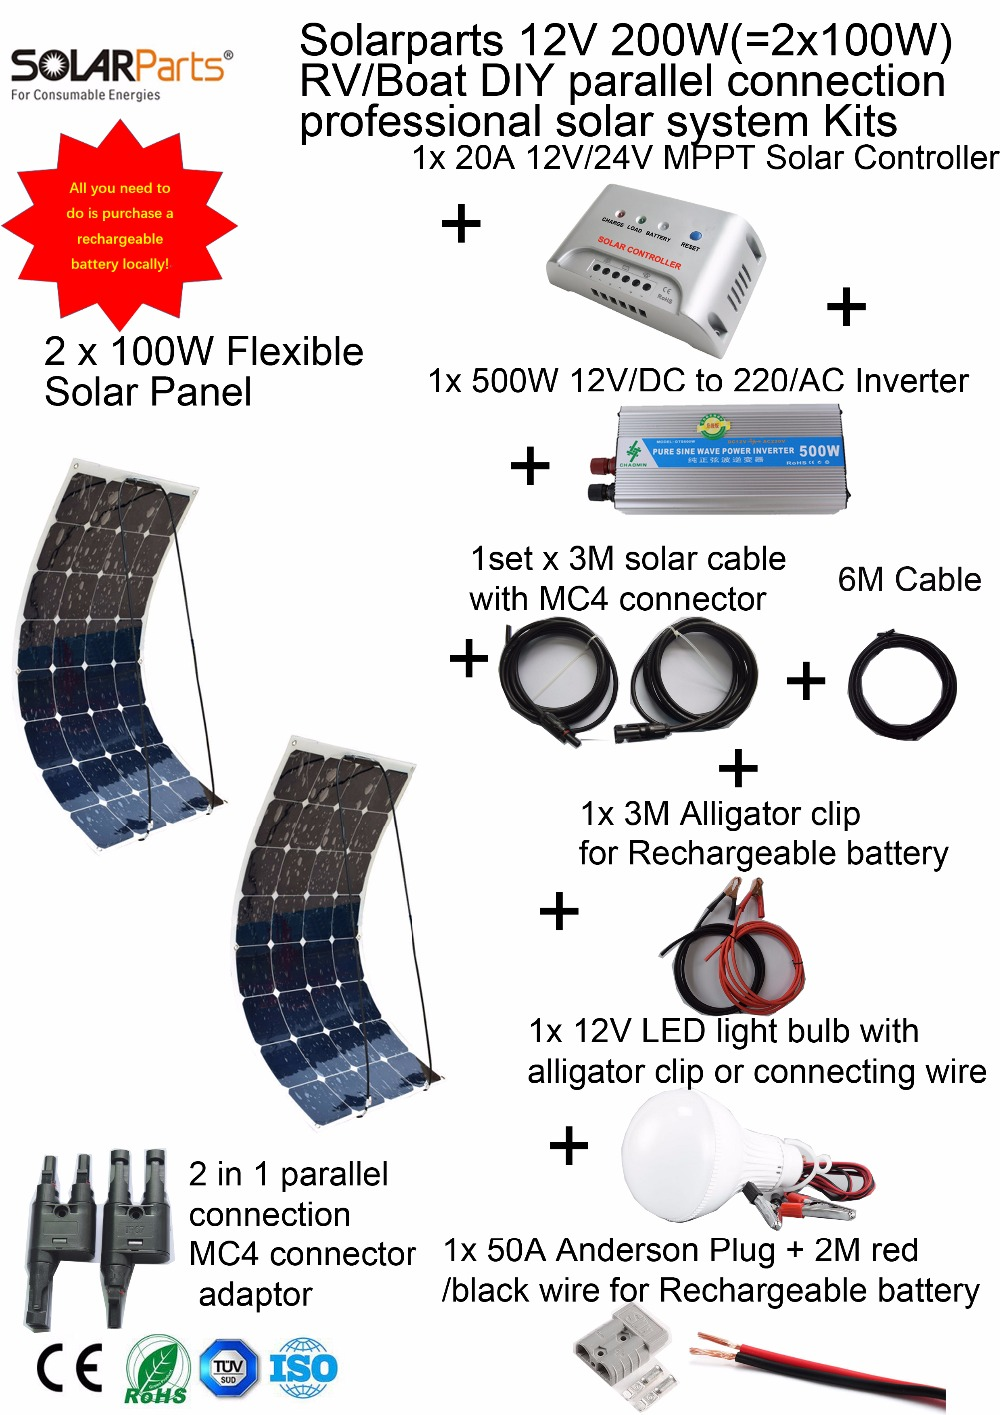 BOGUANG 1x200W Photovoltaic system DIY RV/Boat/Marine Kit Solar Home efficient flexible solar panel MPPT controller Inverter 50w 12v epoxy solar panels solar cells battery flexible polycrystalline silicon diy solar modules pro for boat rv car 540x550mm